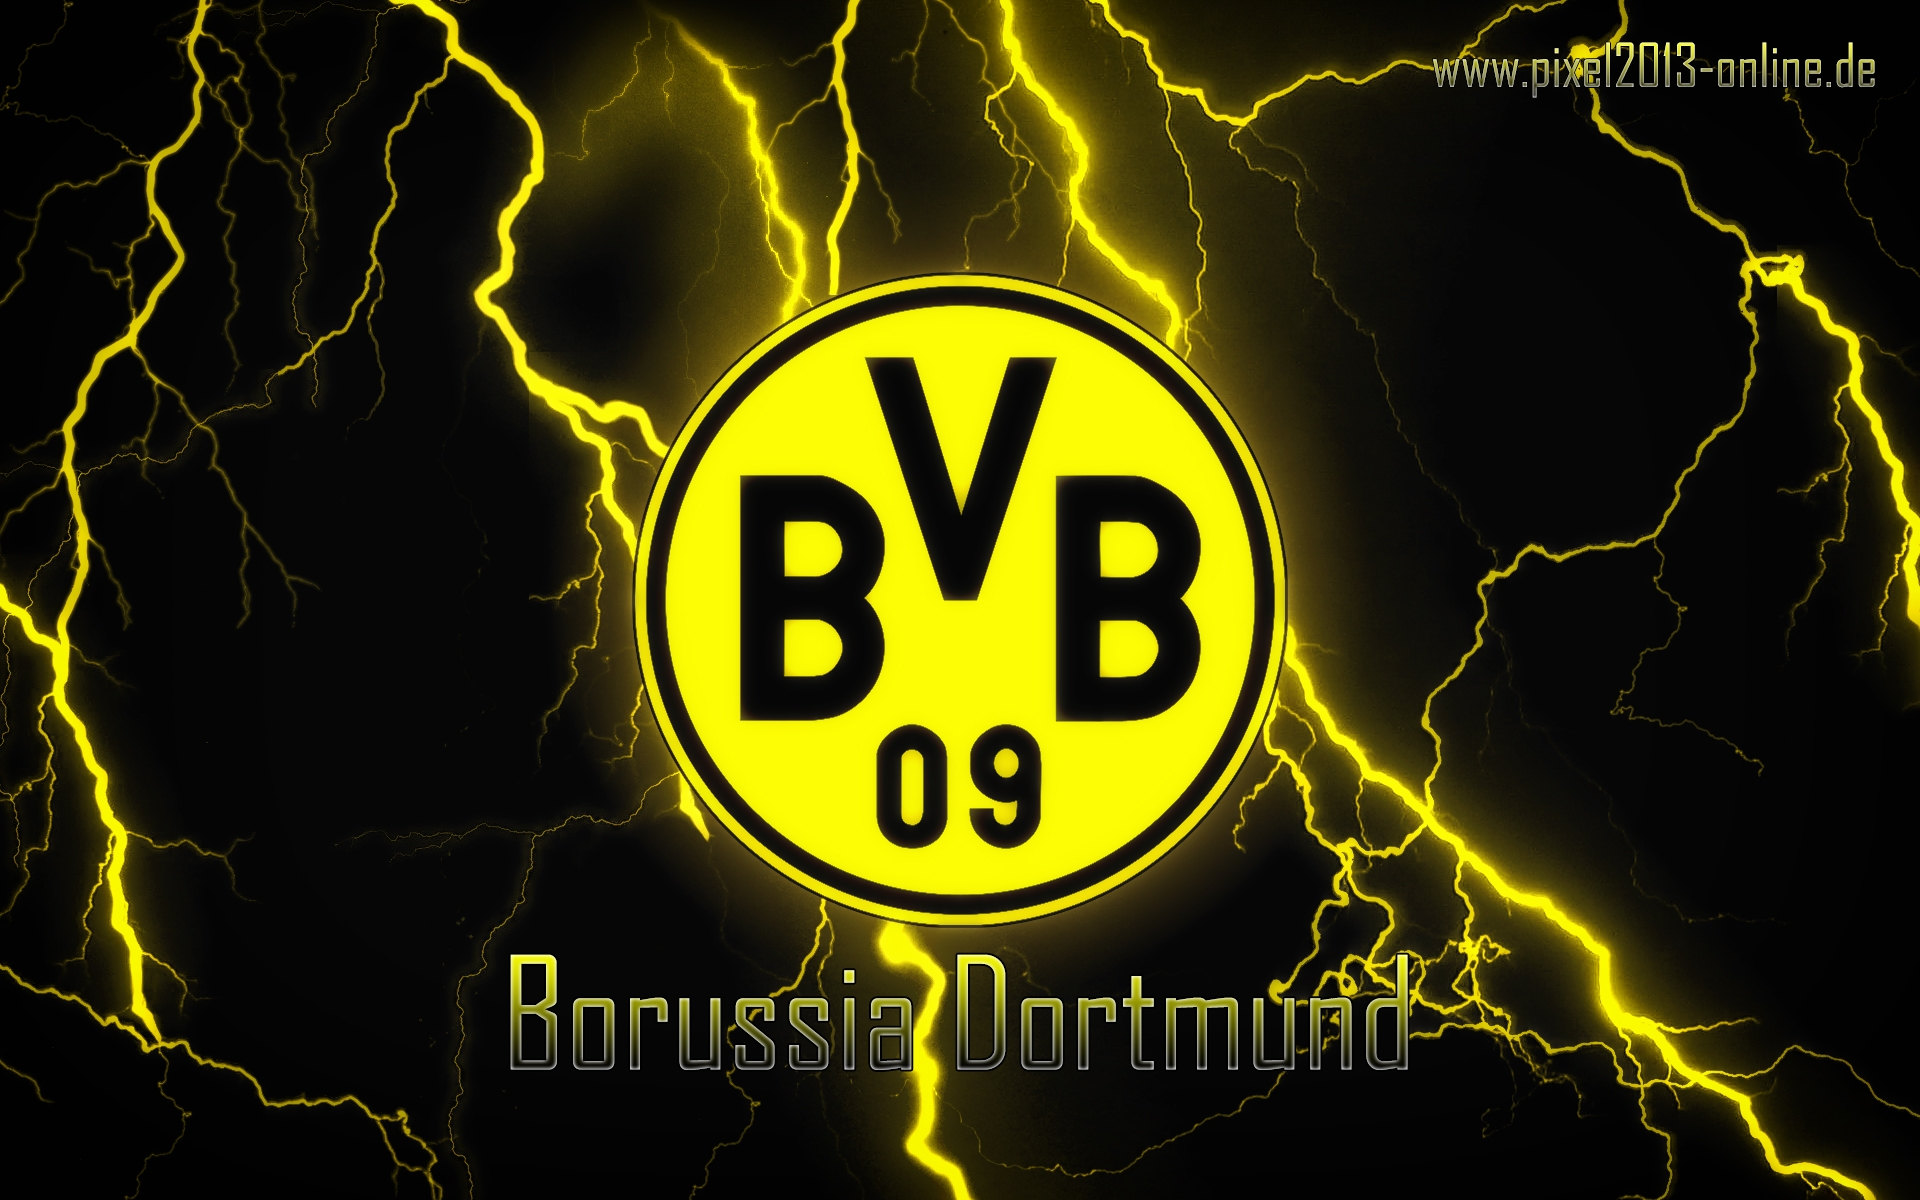 borussia dortmund wallpaper 7